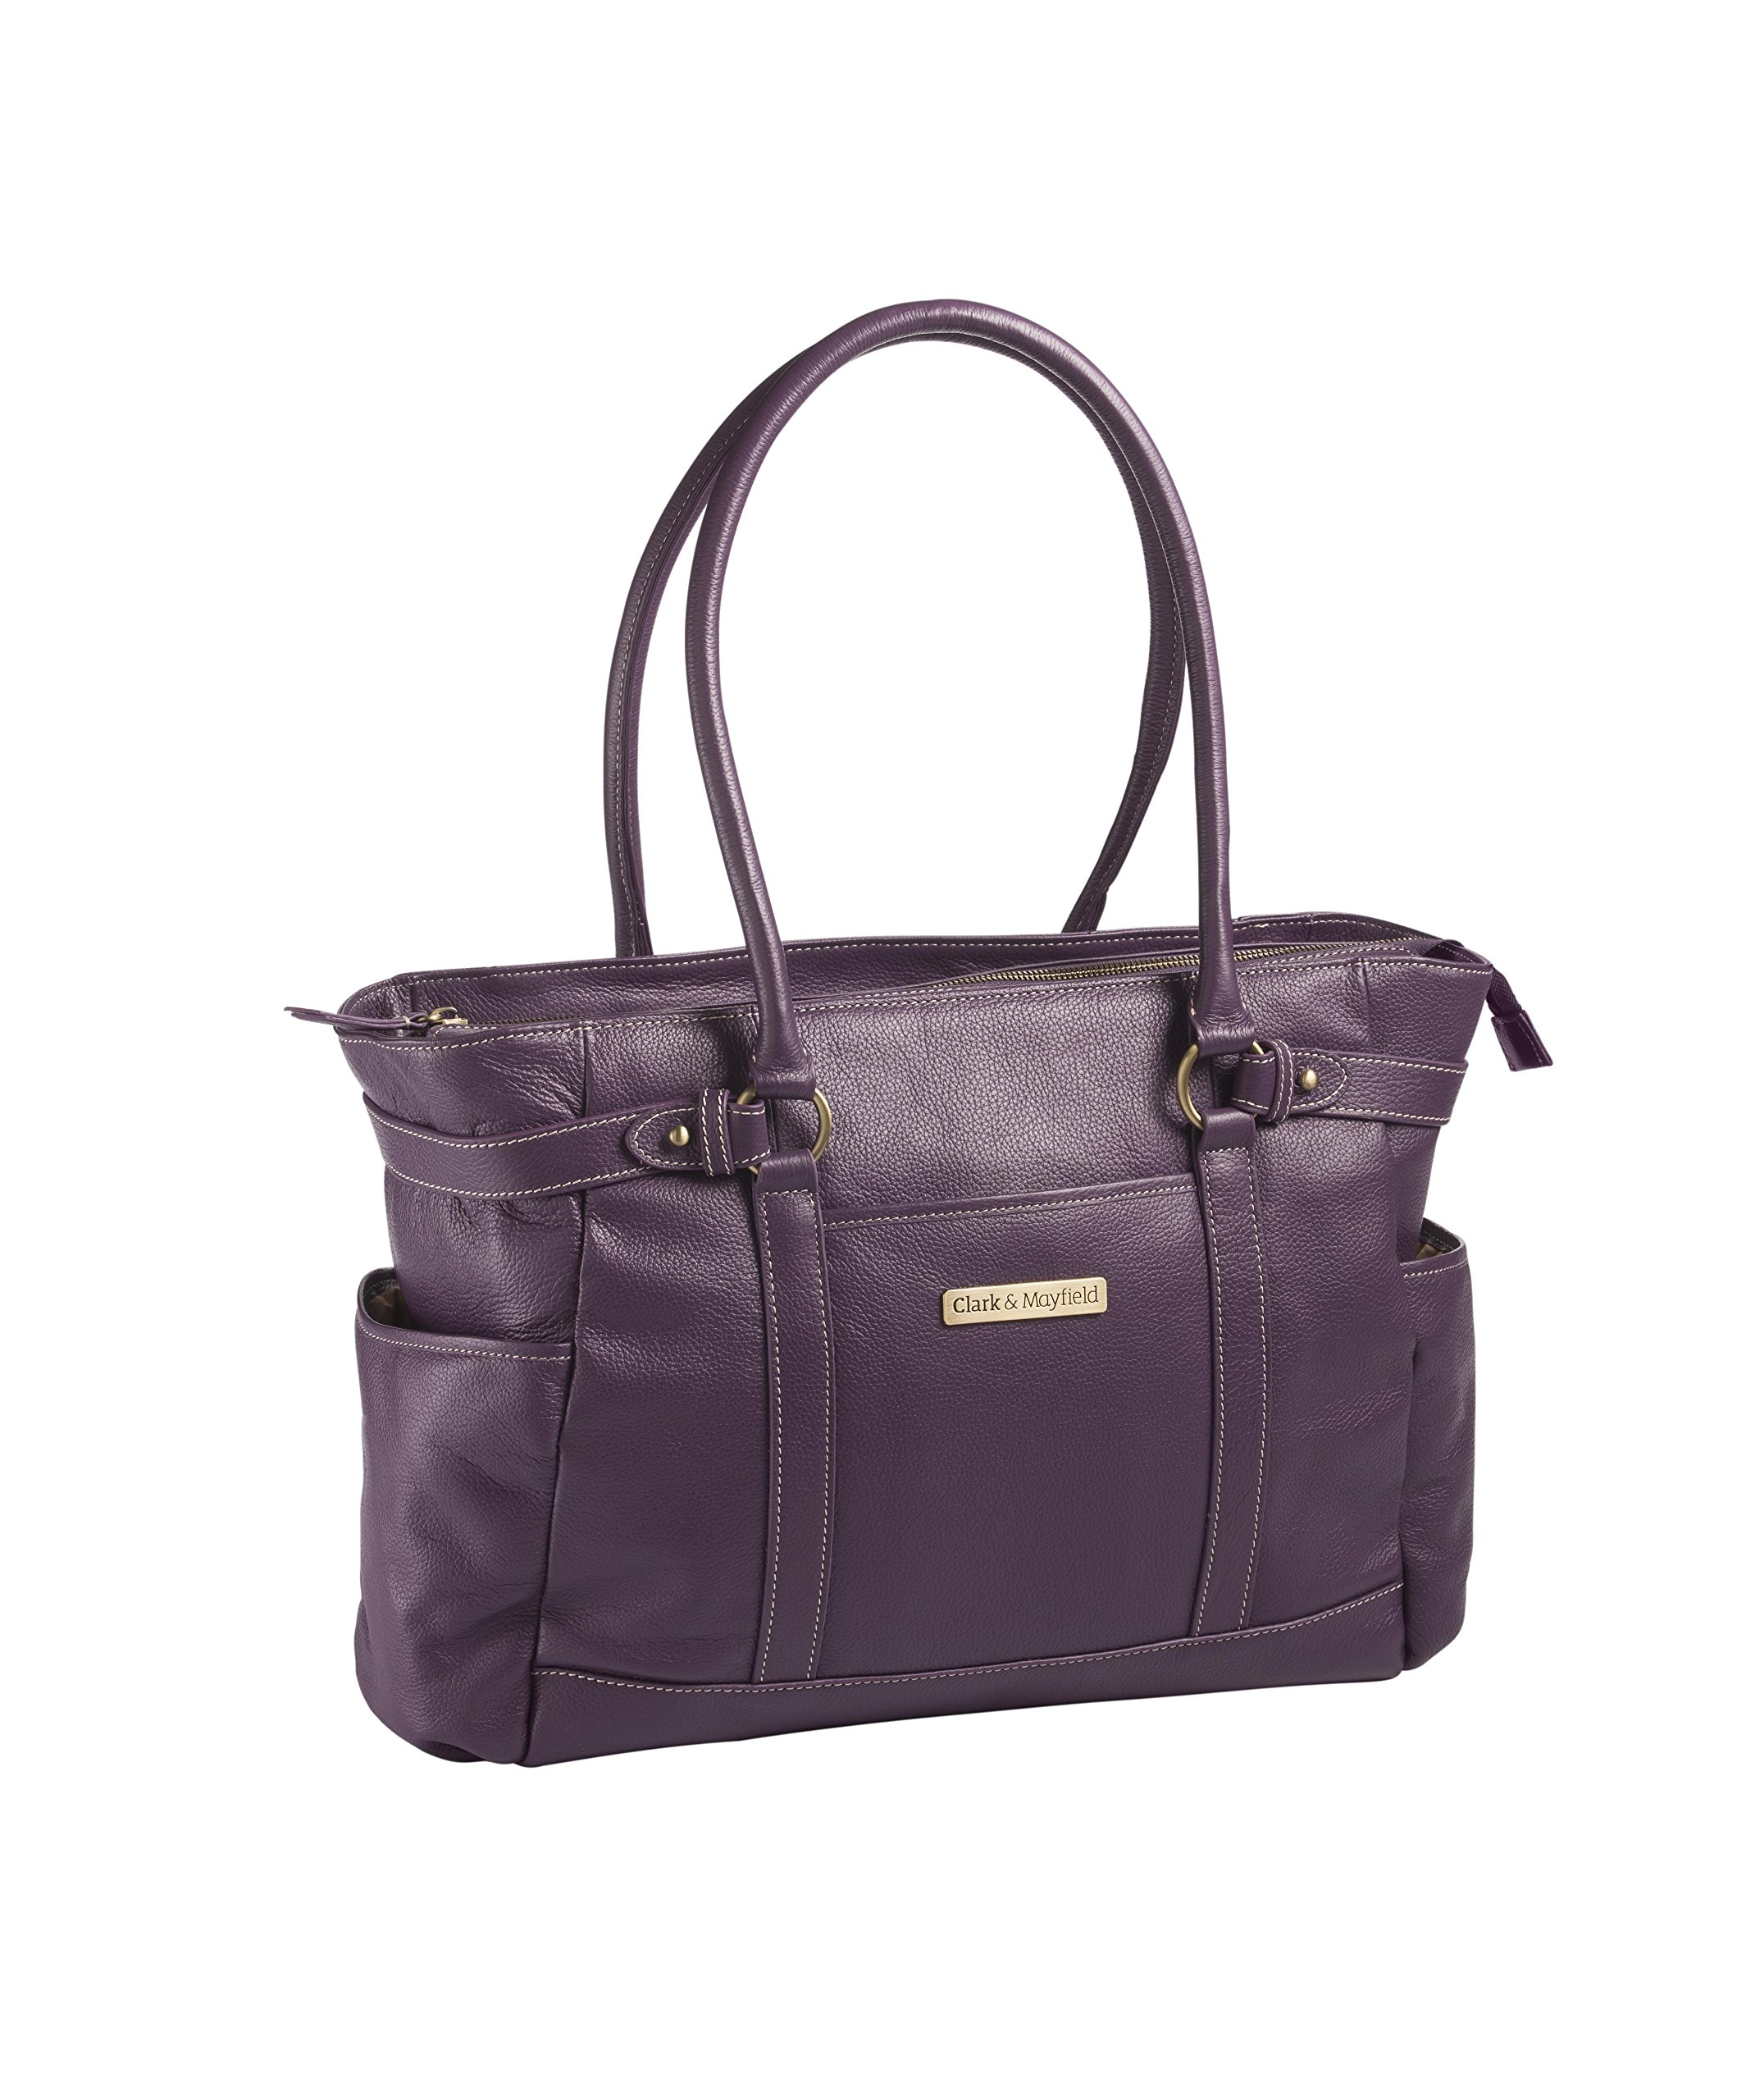 Clark & Mayfield Hawthorne Leather 17.3'' Laptop Handbag (Purple)